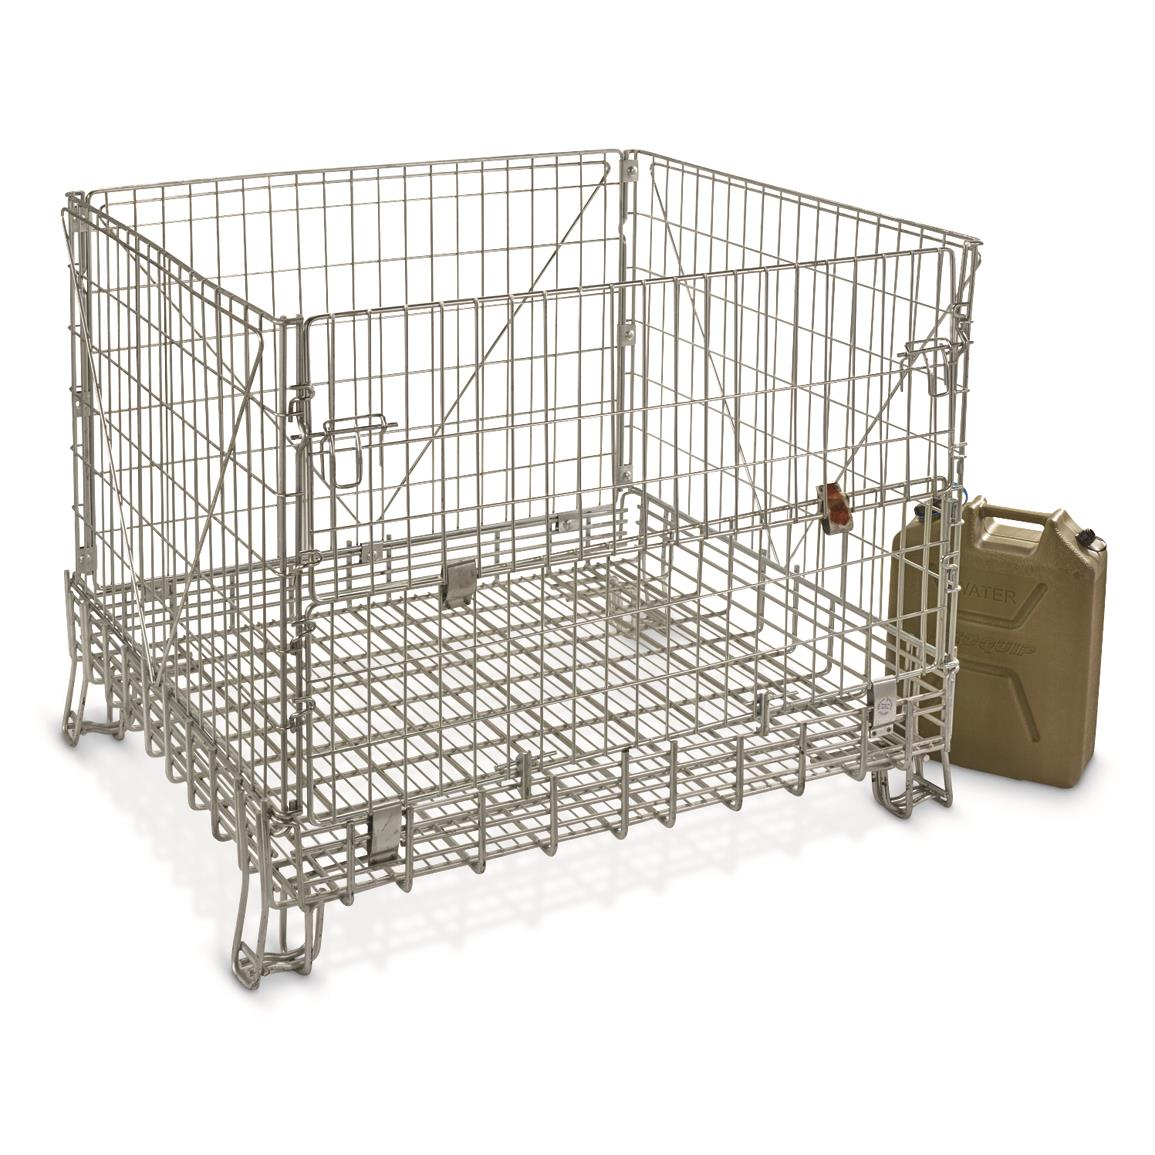 U.S. Military Surplus Steel Cage Storage Bin, New